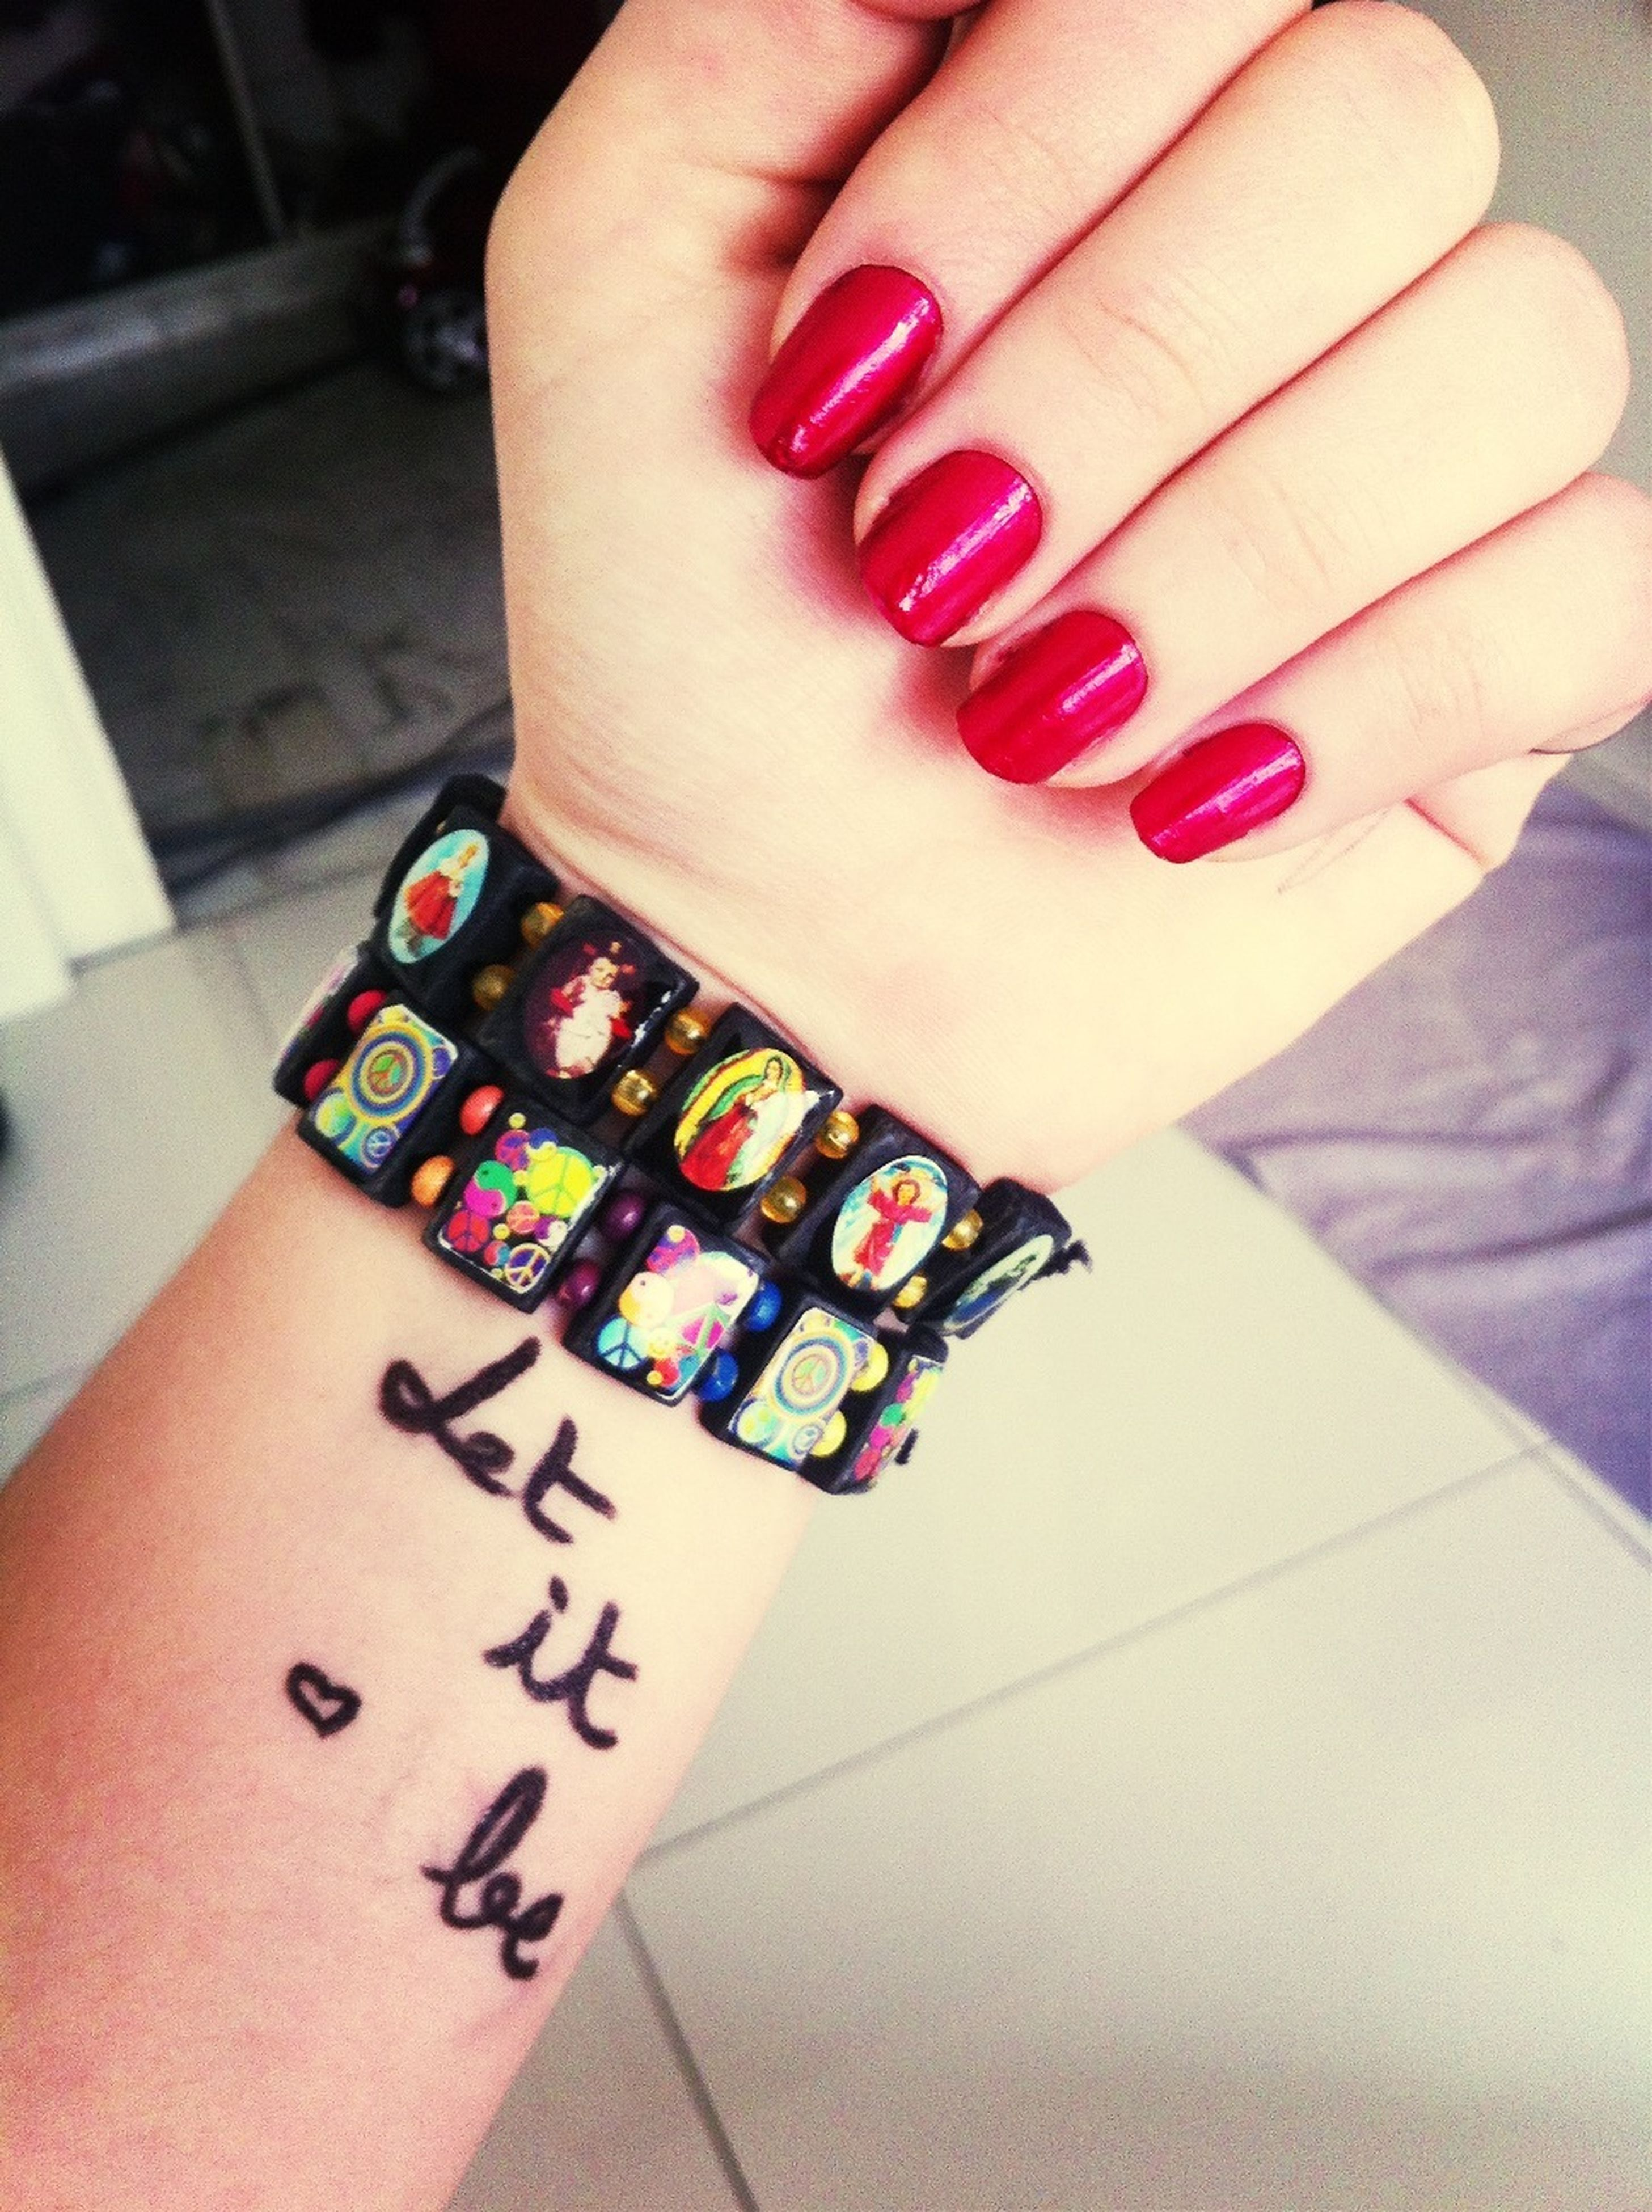 indoors, person, part of, high angle view, text, human finger, communication, close-up, table, cropped, western script, number, holding, nail polish, unrecognizable person, jewelry